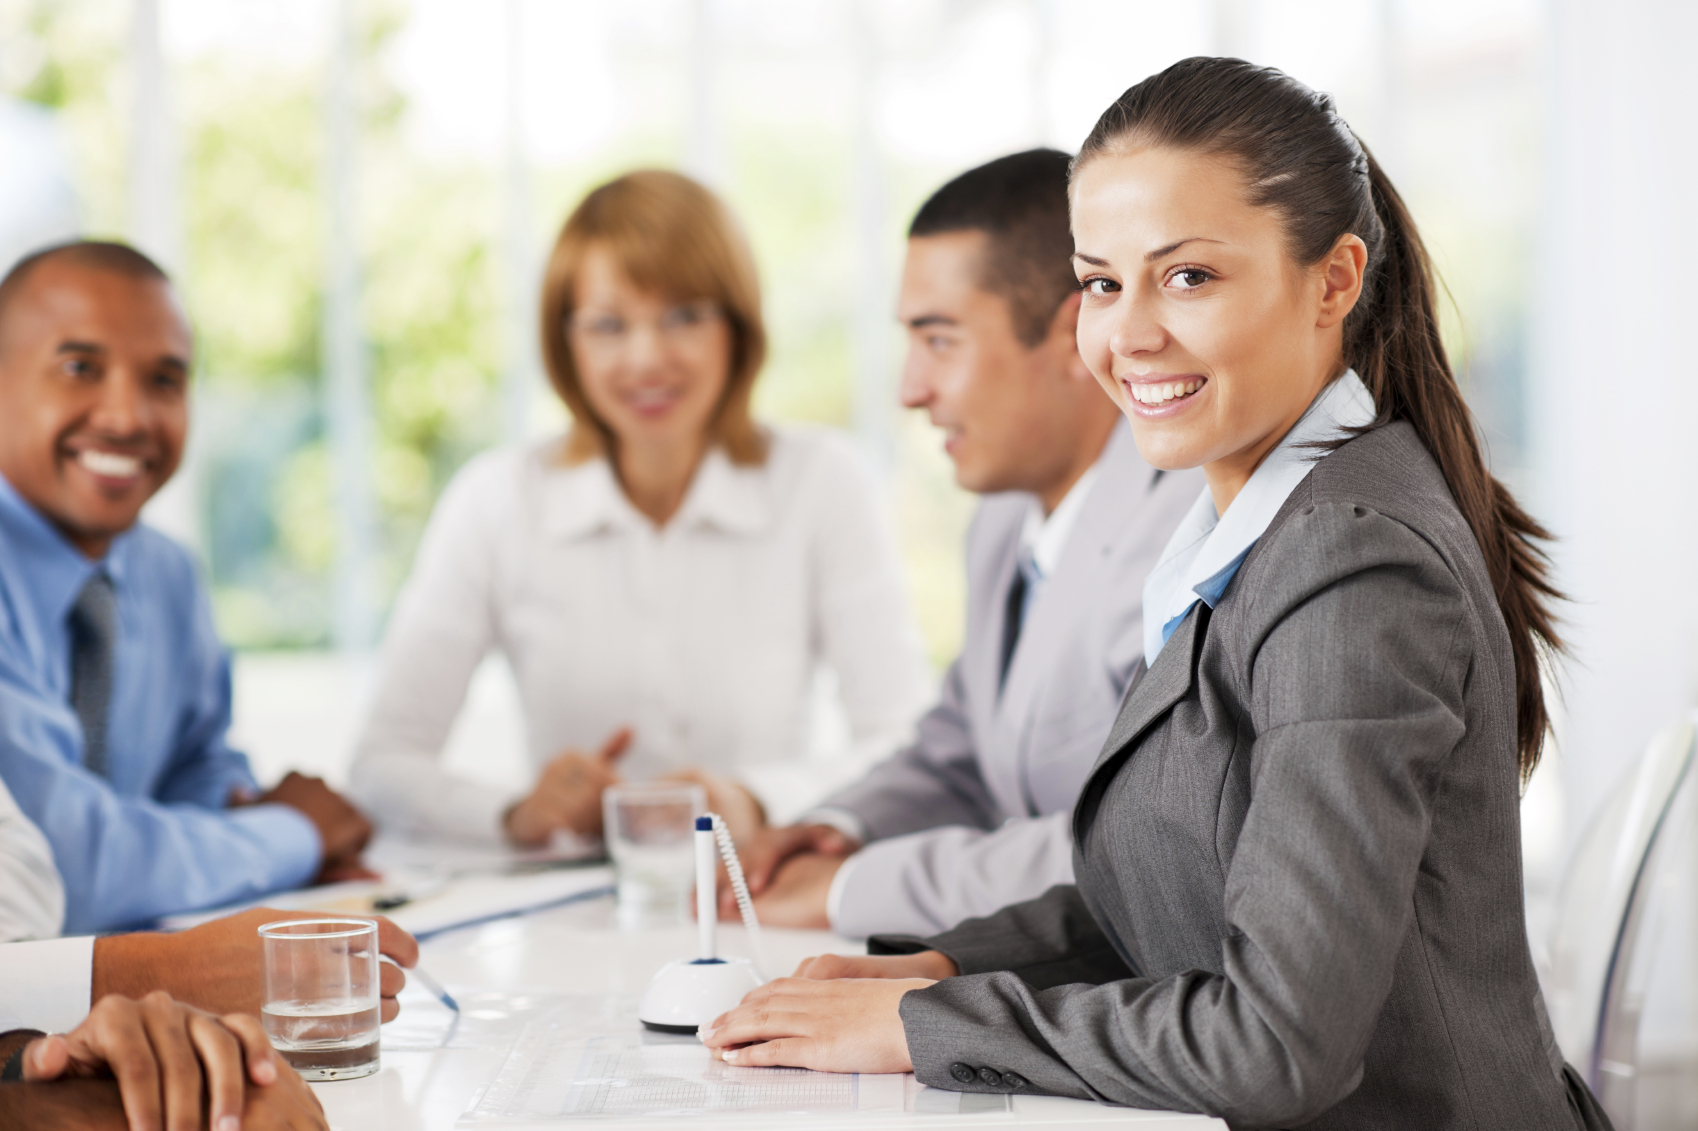 Successful group of businesspeople working in office. They are on a meeting.  The focus is on the beautiful brunette looking at the camera.   [url=http://www.istockphoto.com/search/lightbox/9786622][img]http://img543.imageshack.us/img543/9562/business.jpg[/img][/url]  [url=http://www.istockphoto.com/search/lightbox/9786738][img]http://img830.imageshack.us/img830/1561/groupsk.jpg[/img][/url]